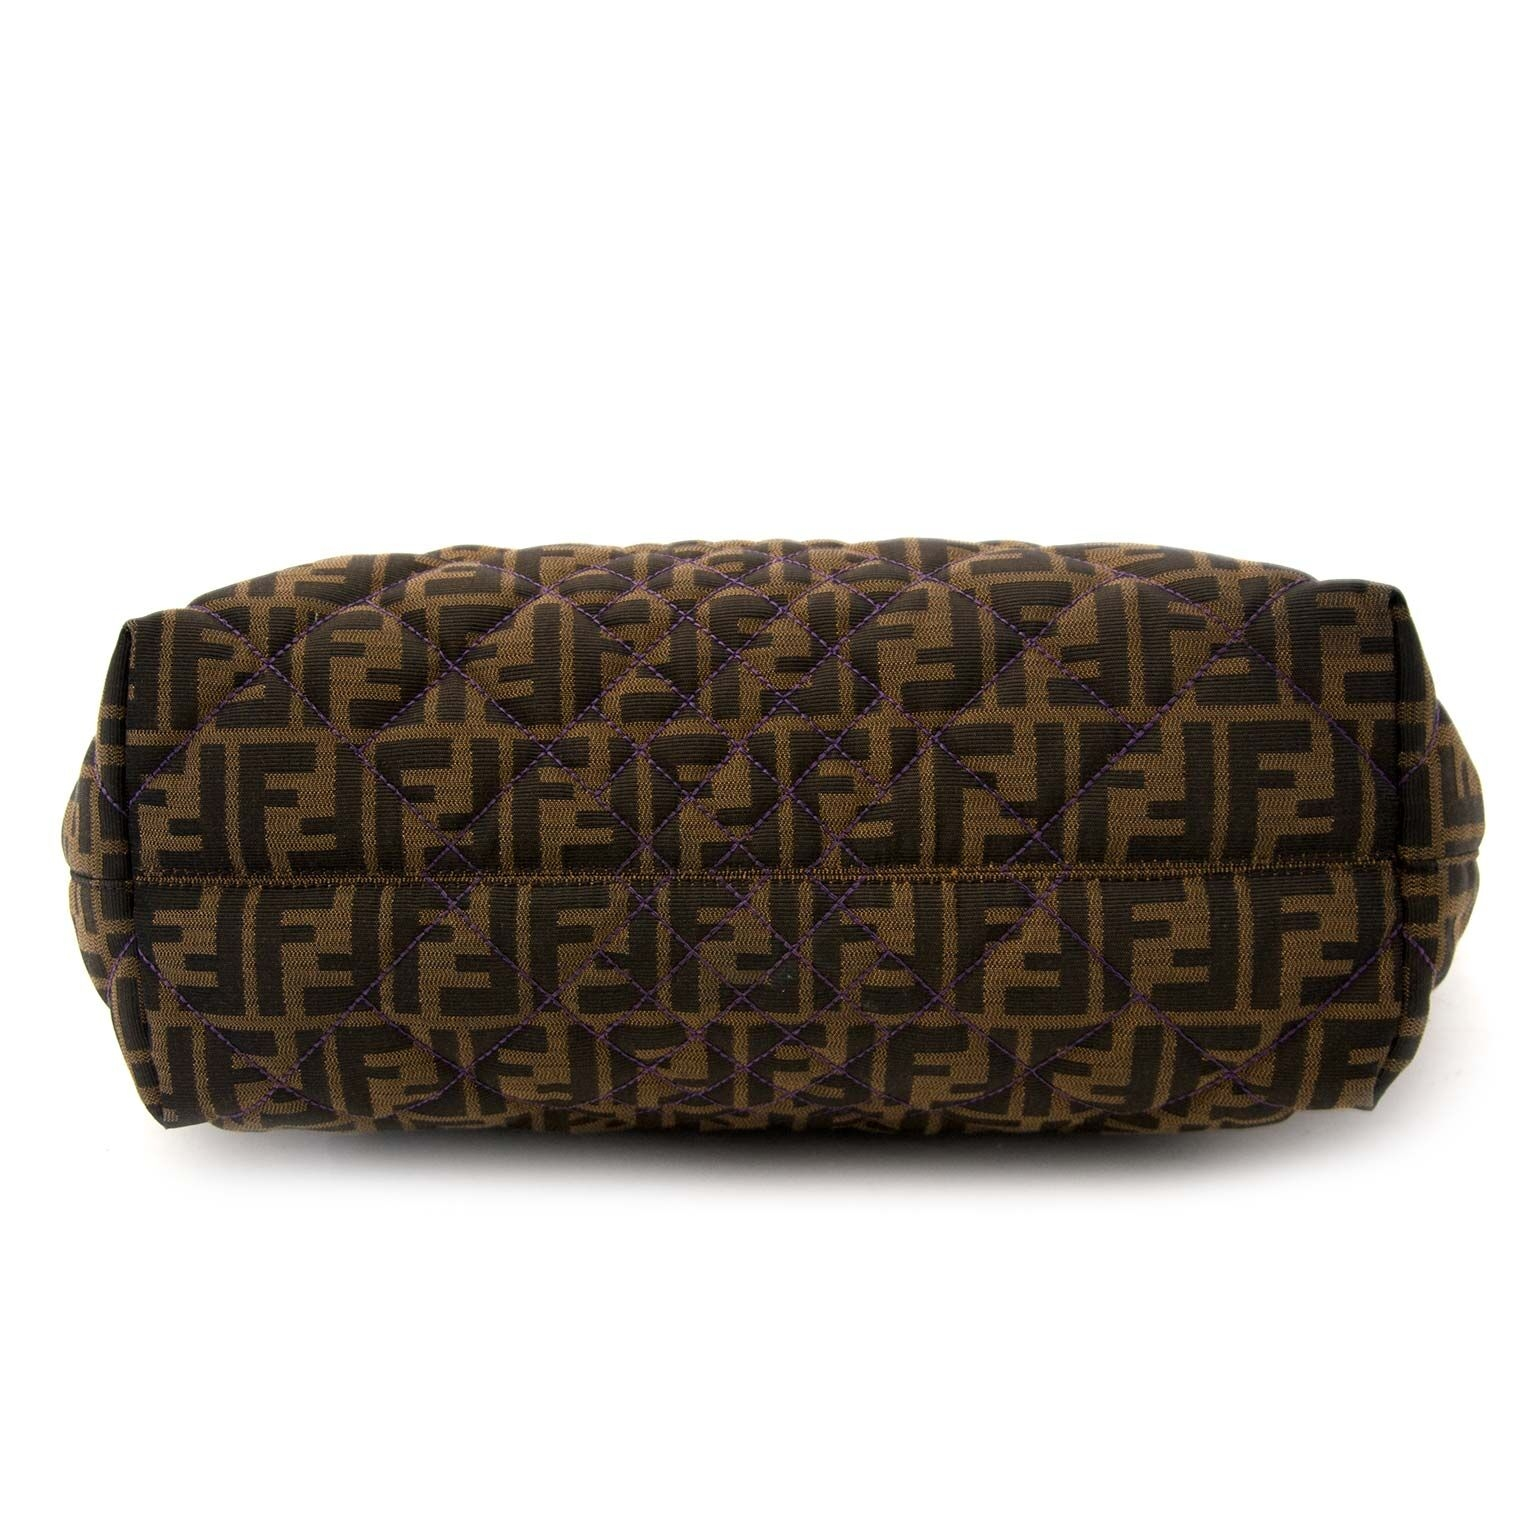 secondhand fendi bags for sale at labellov